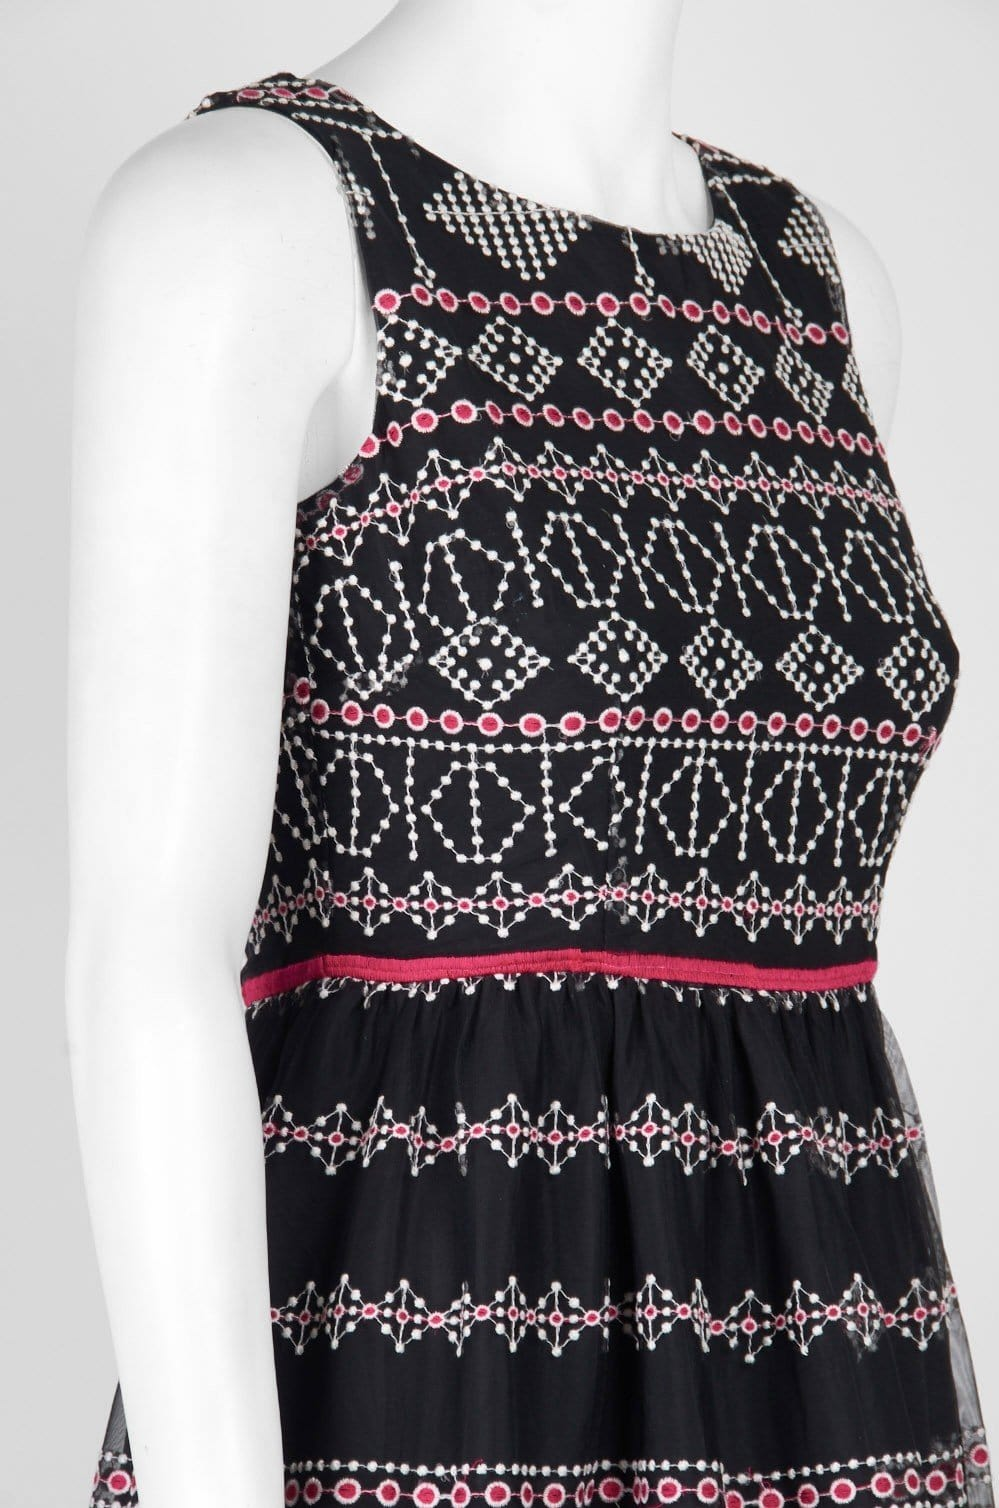 Taylor - 9722M Sleeveless Piped Multi-Print A-Line Dress In Black